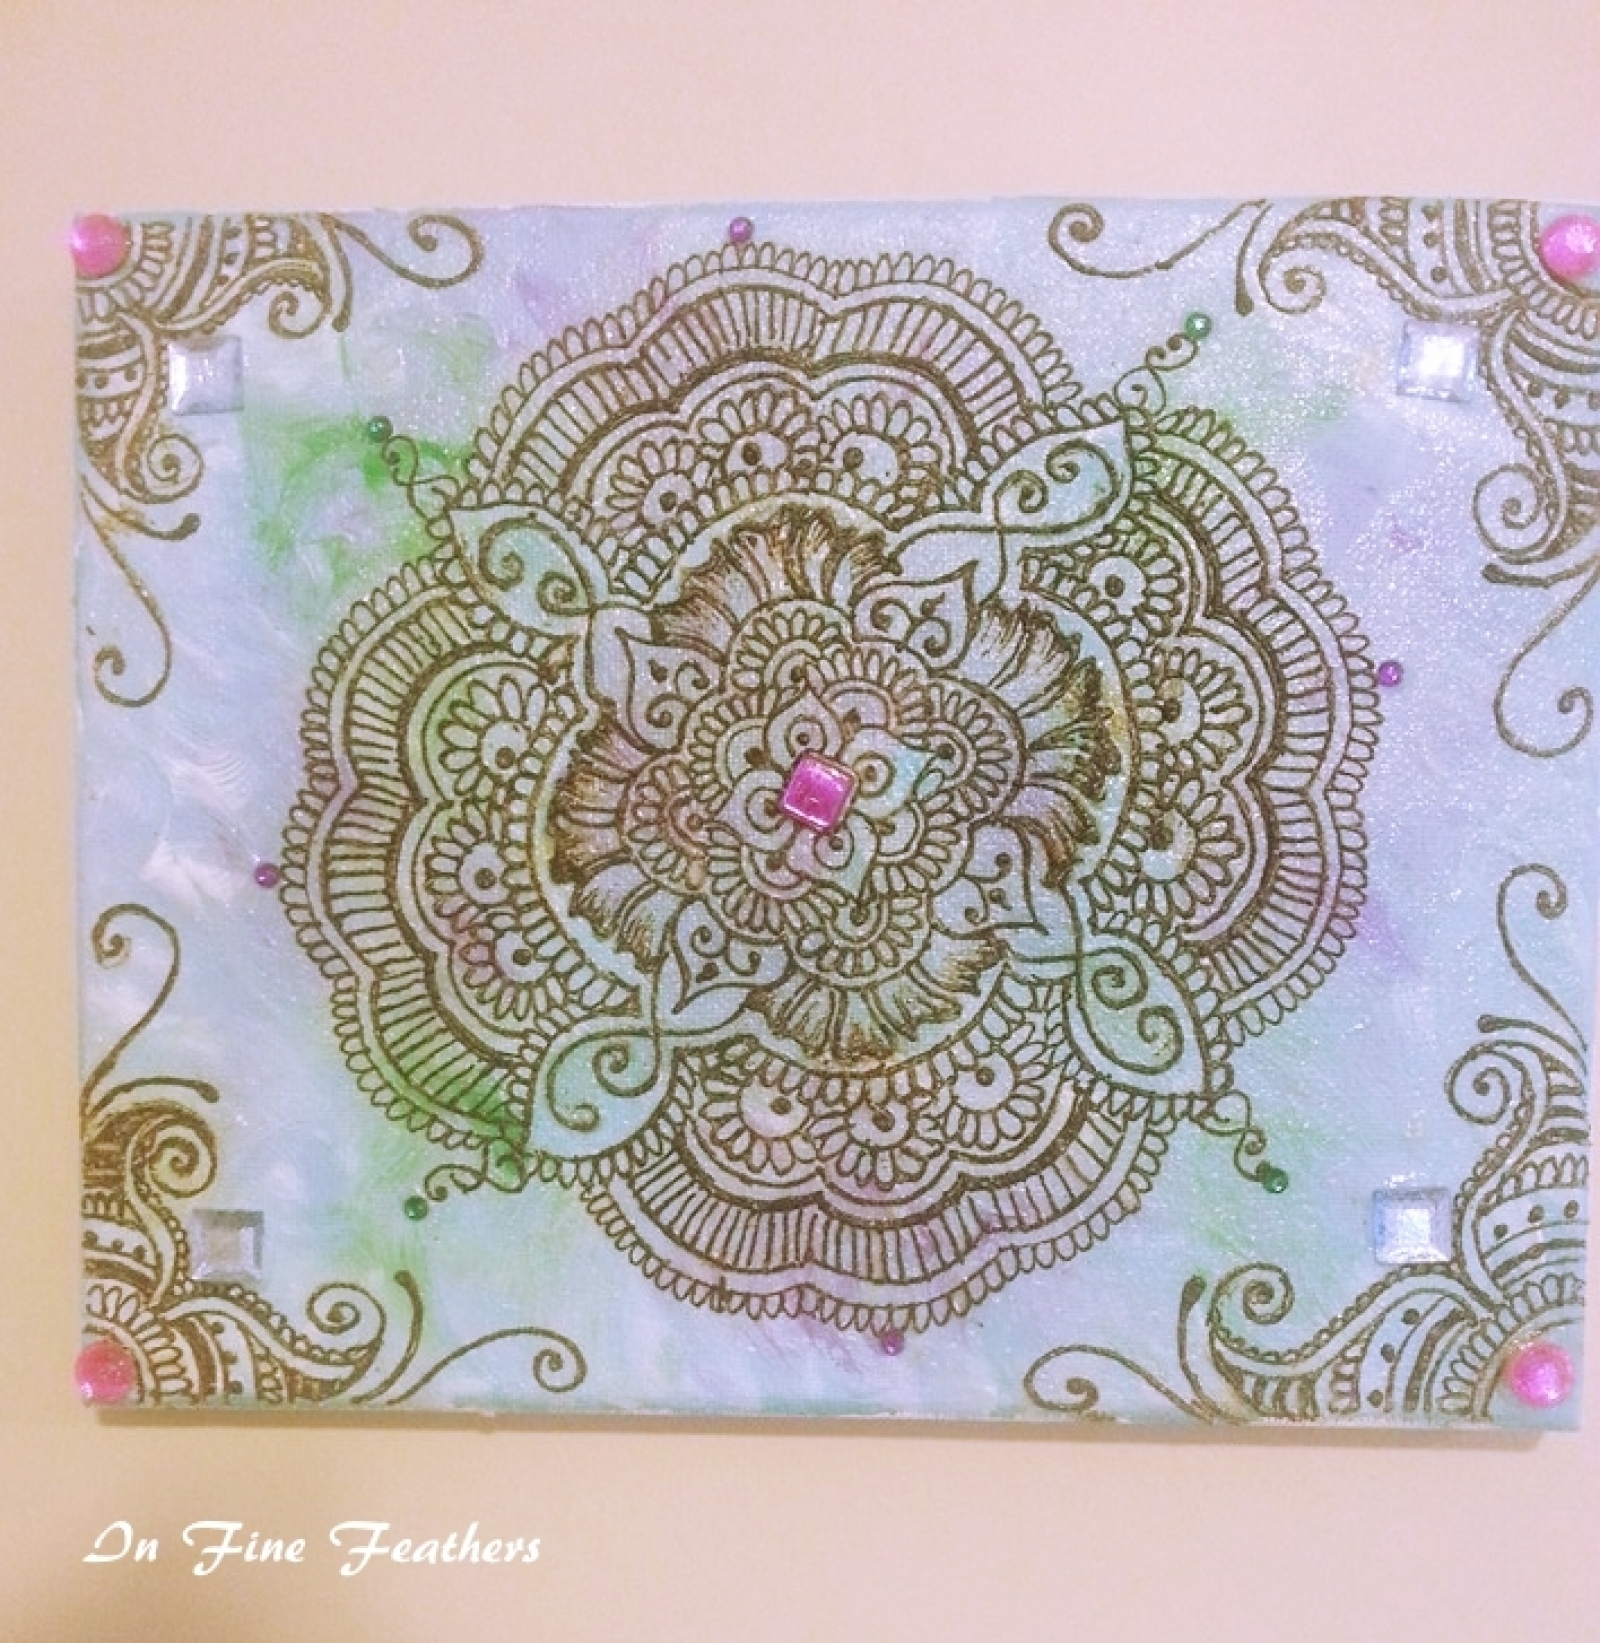 Henna Mandala Boho Chic Wall Art Yoga Studio Office Spring Decor With Regard To Most Recently Released Henna Wall Art (View 5 of 20)